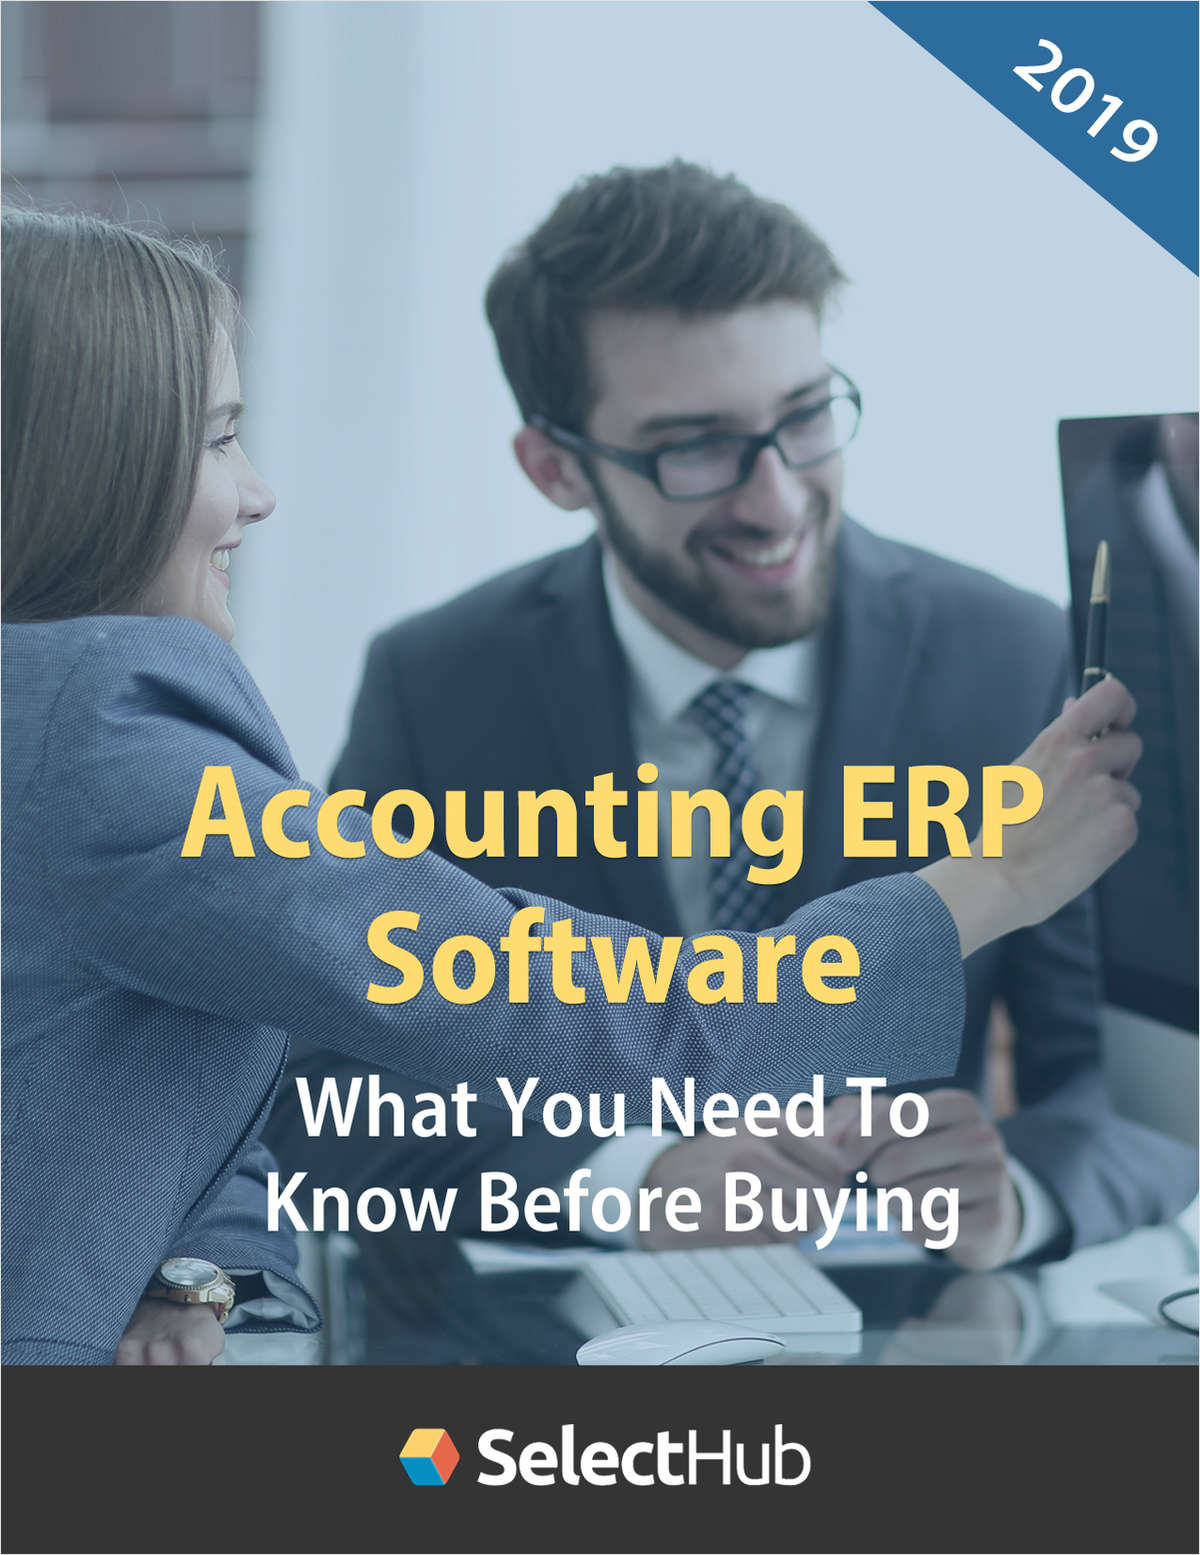 Accounting ERP Software: What You Need to Know Before Buying